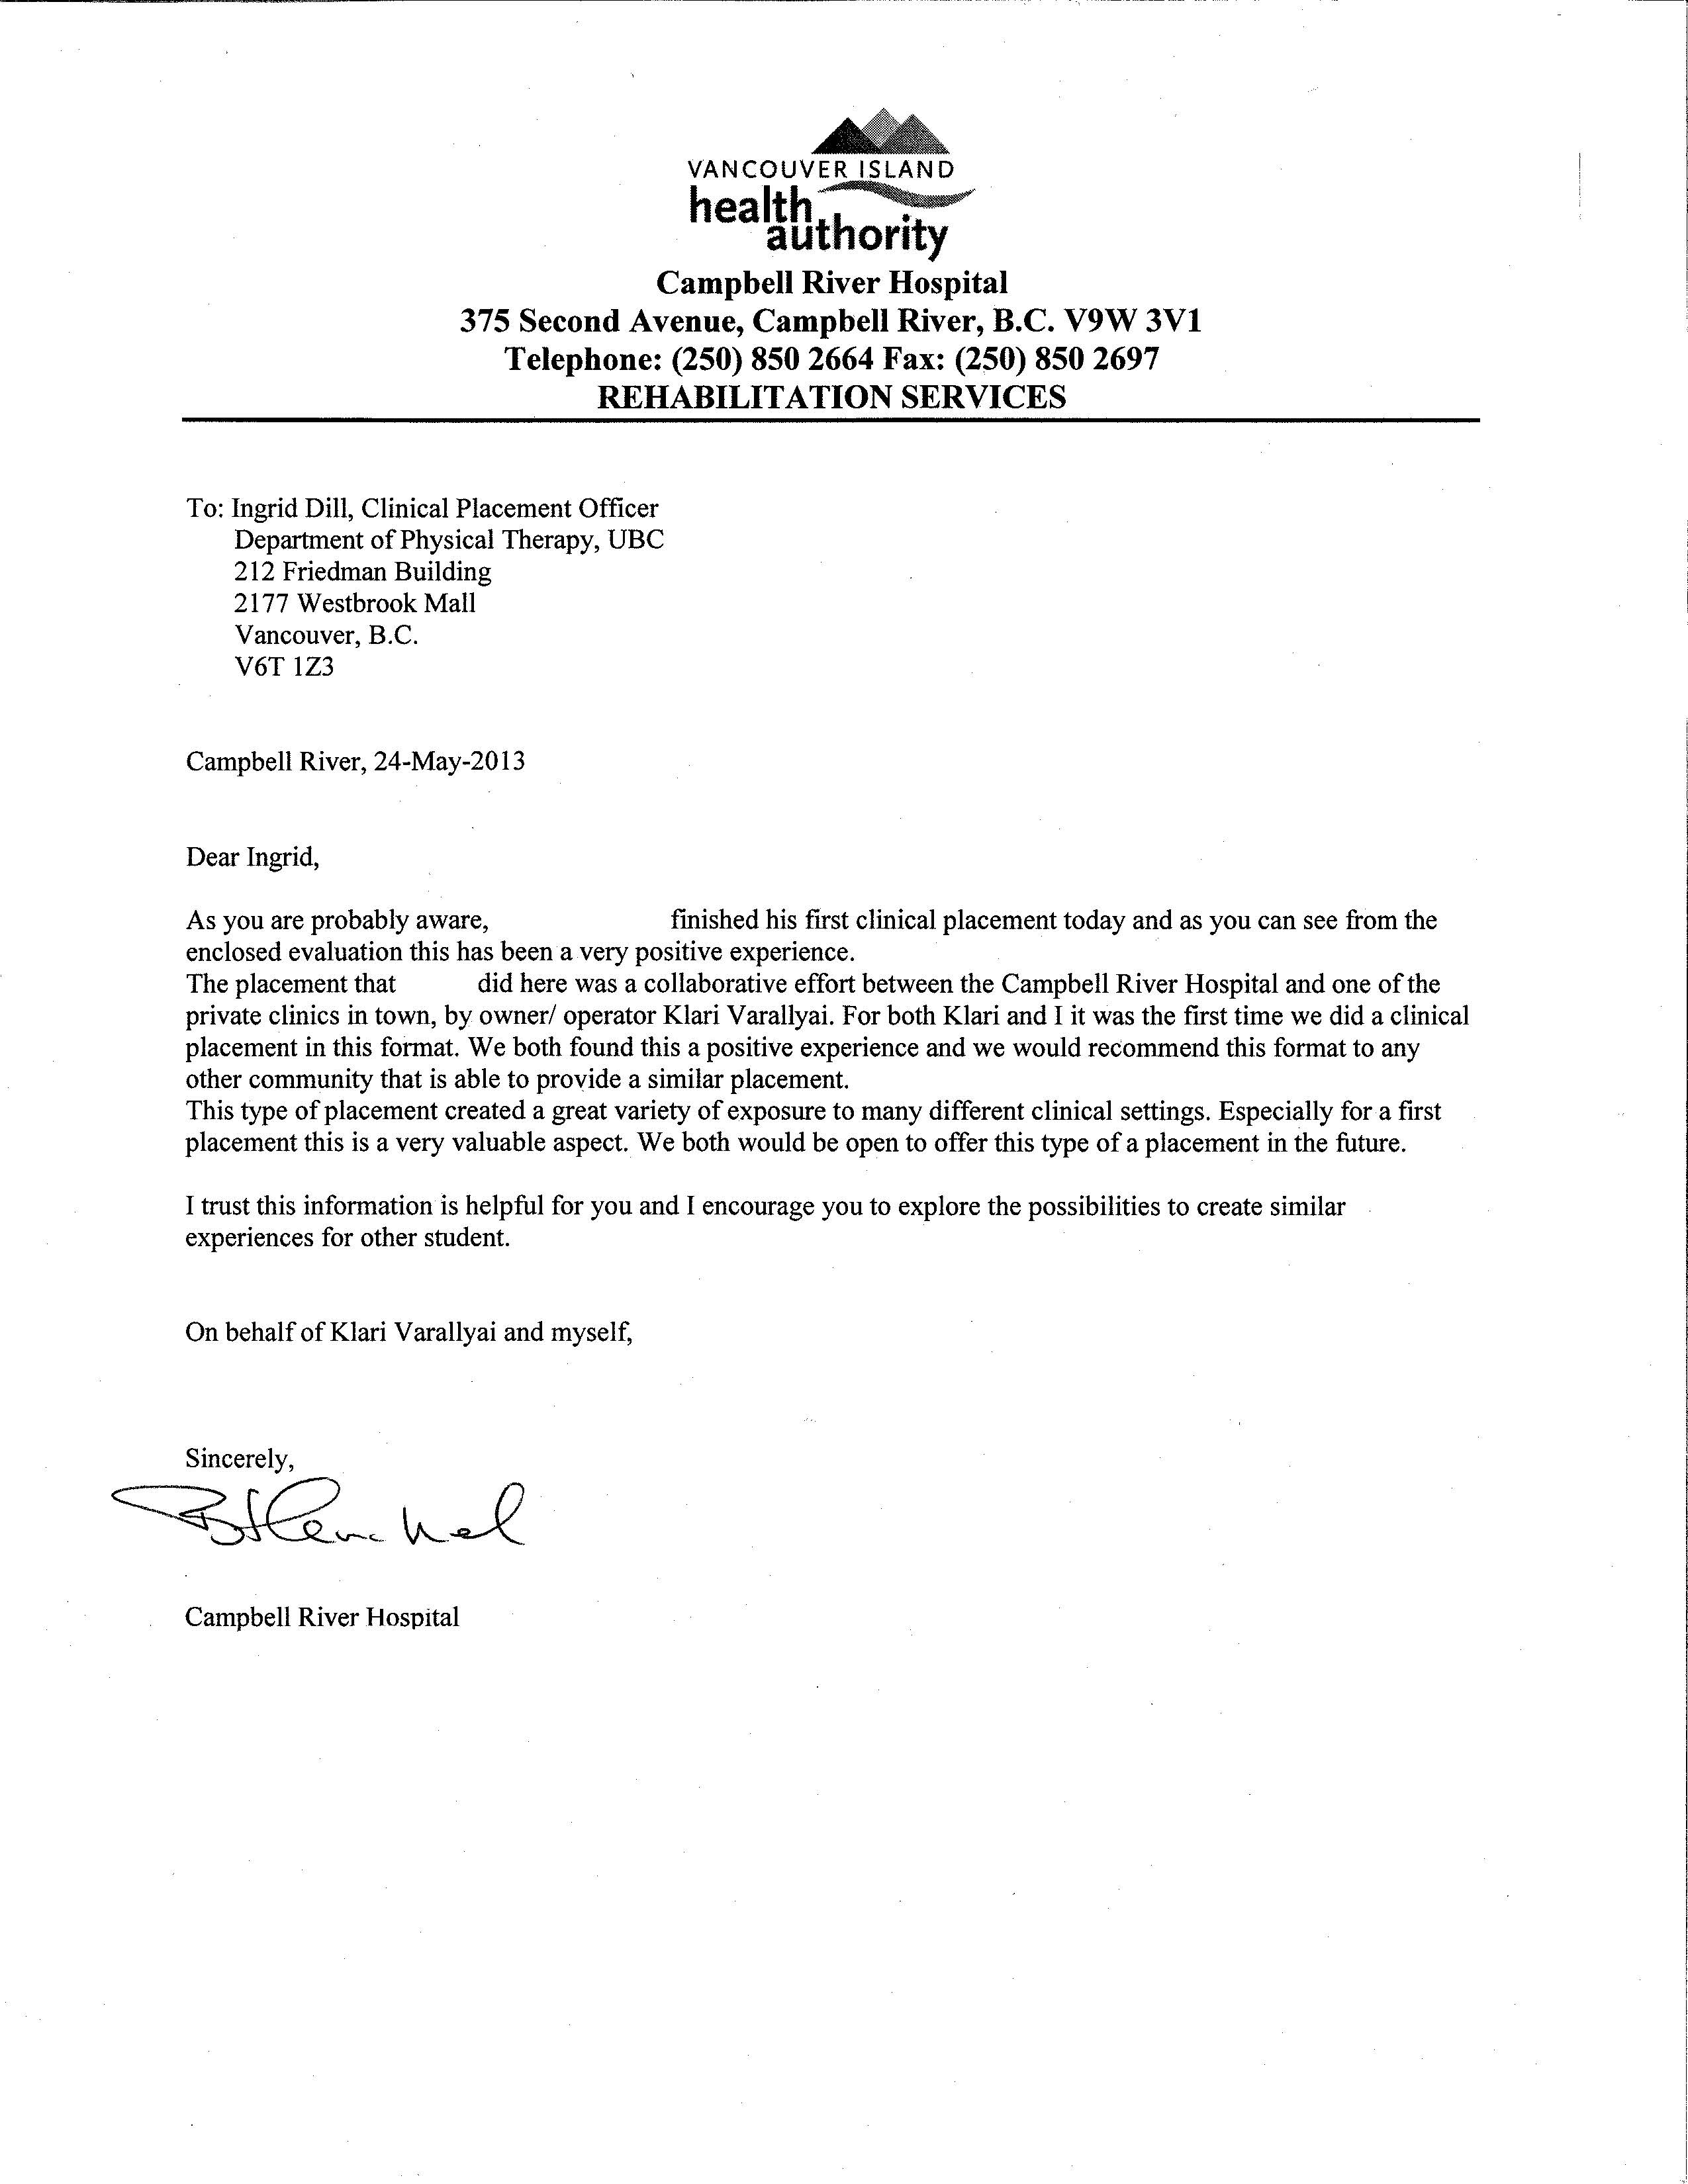 sample of recommendation letter for physical therapy school ...